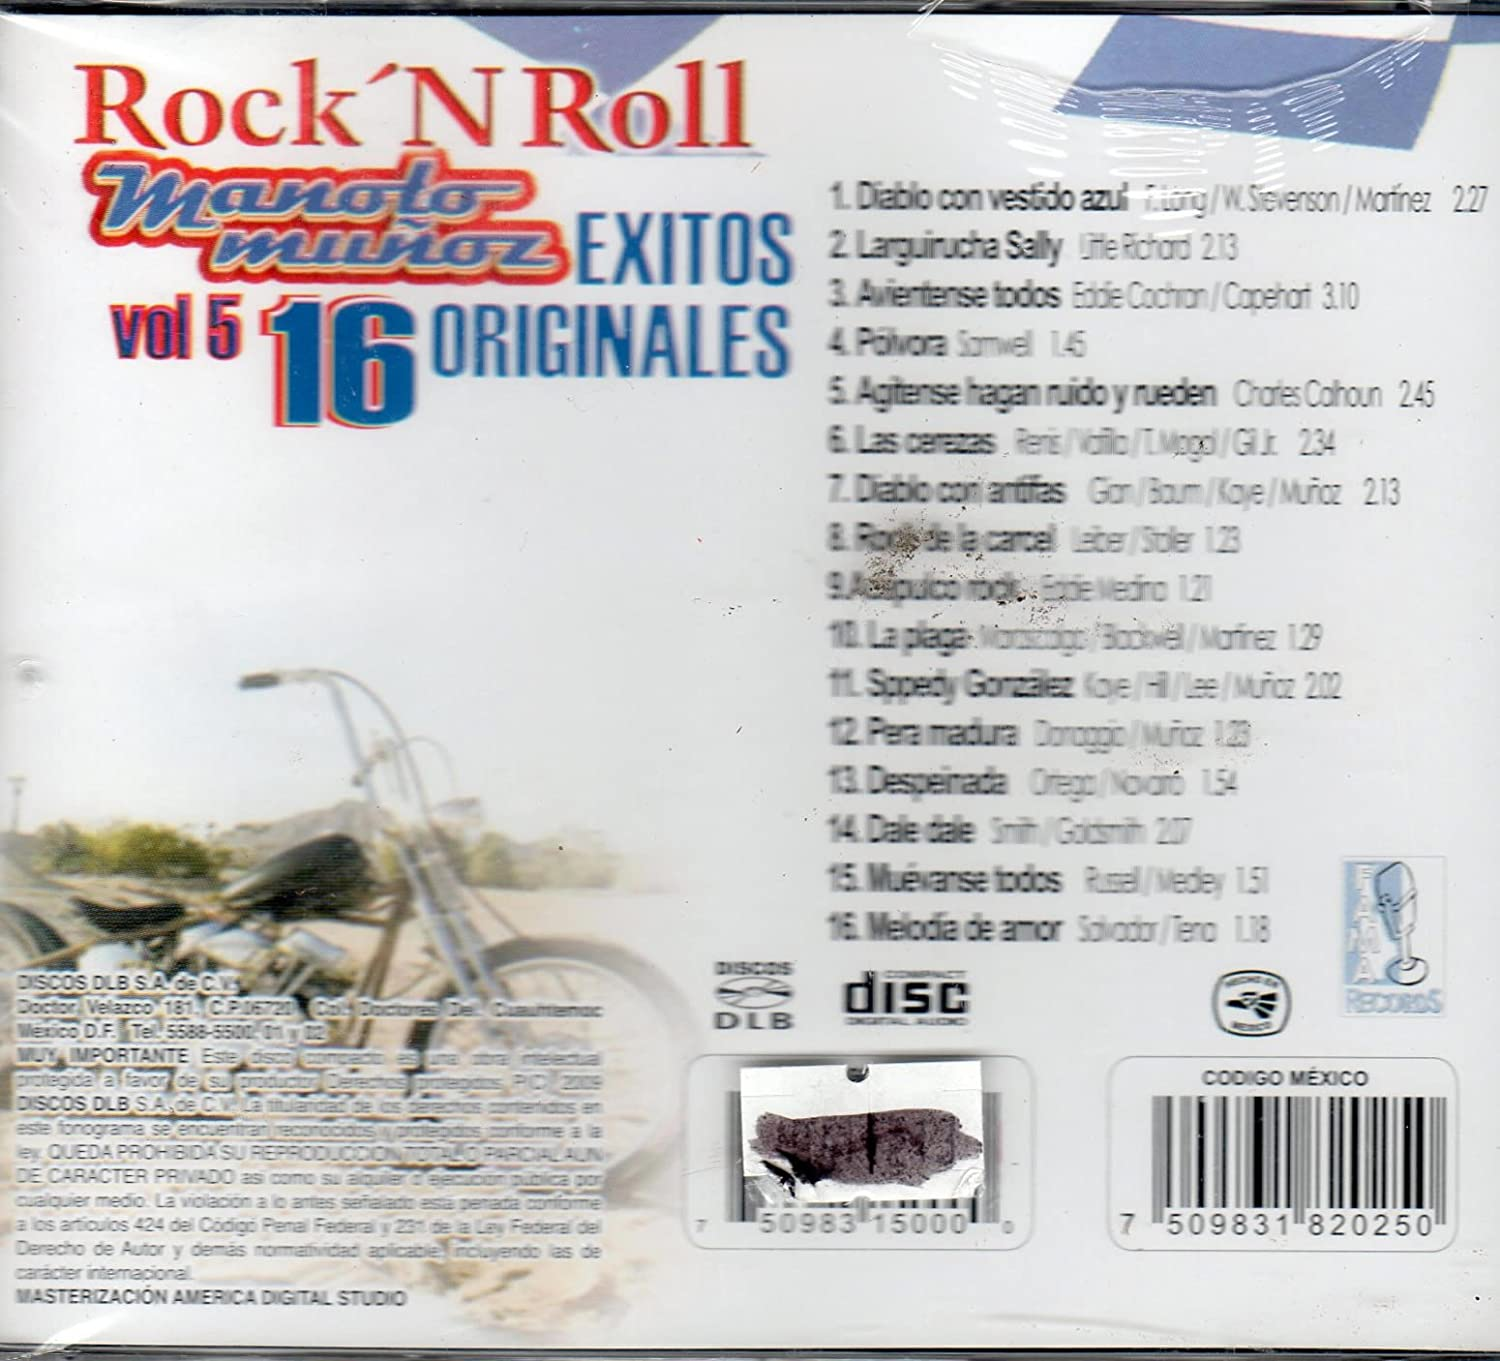 MANOLO MUNOZ - ROCK N ROLL 16 EXITOS ORIGINALES (MANOLO MUNOZ) - Amazon.com Music